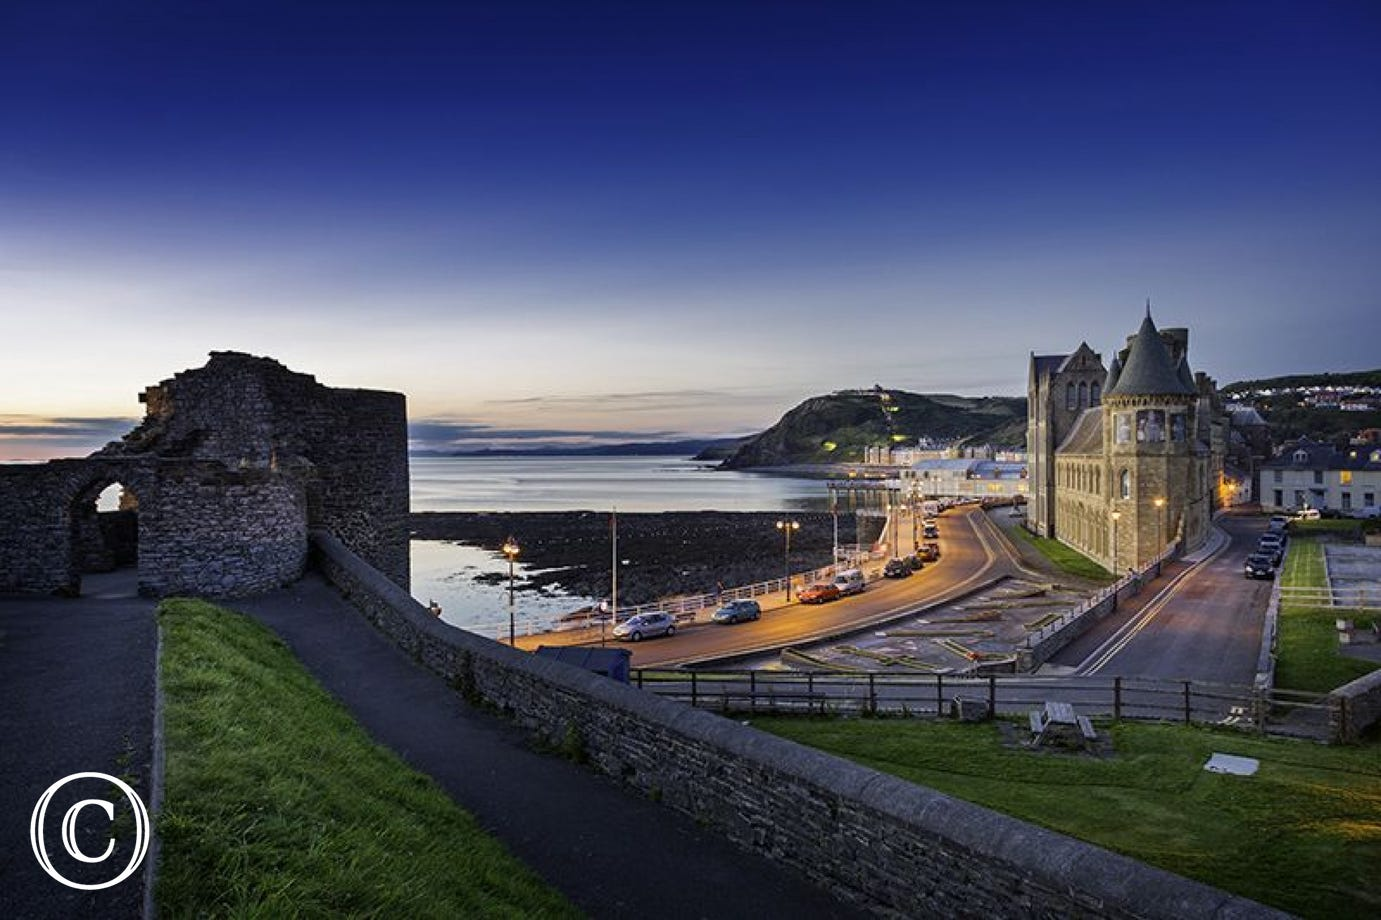 Enjoy beautiful sunsets over Aberystwyth from the castle grounds